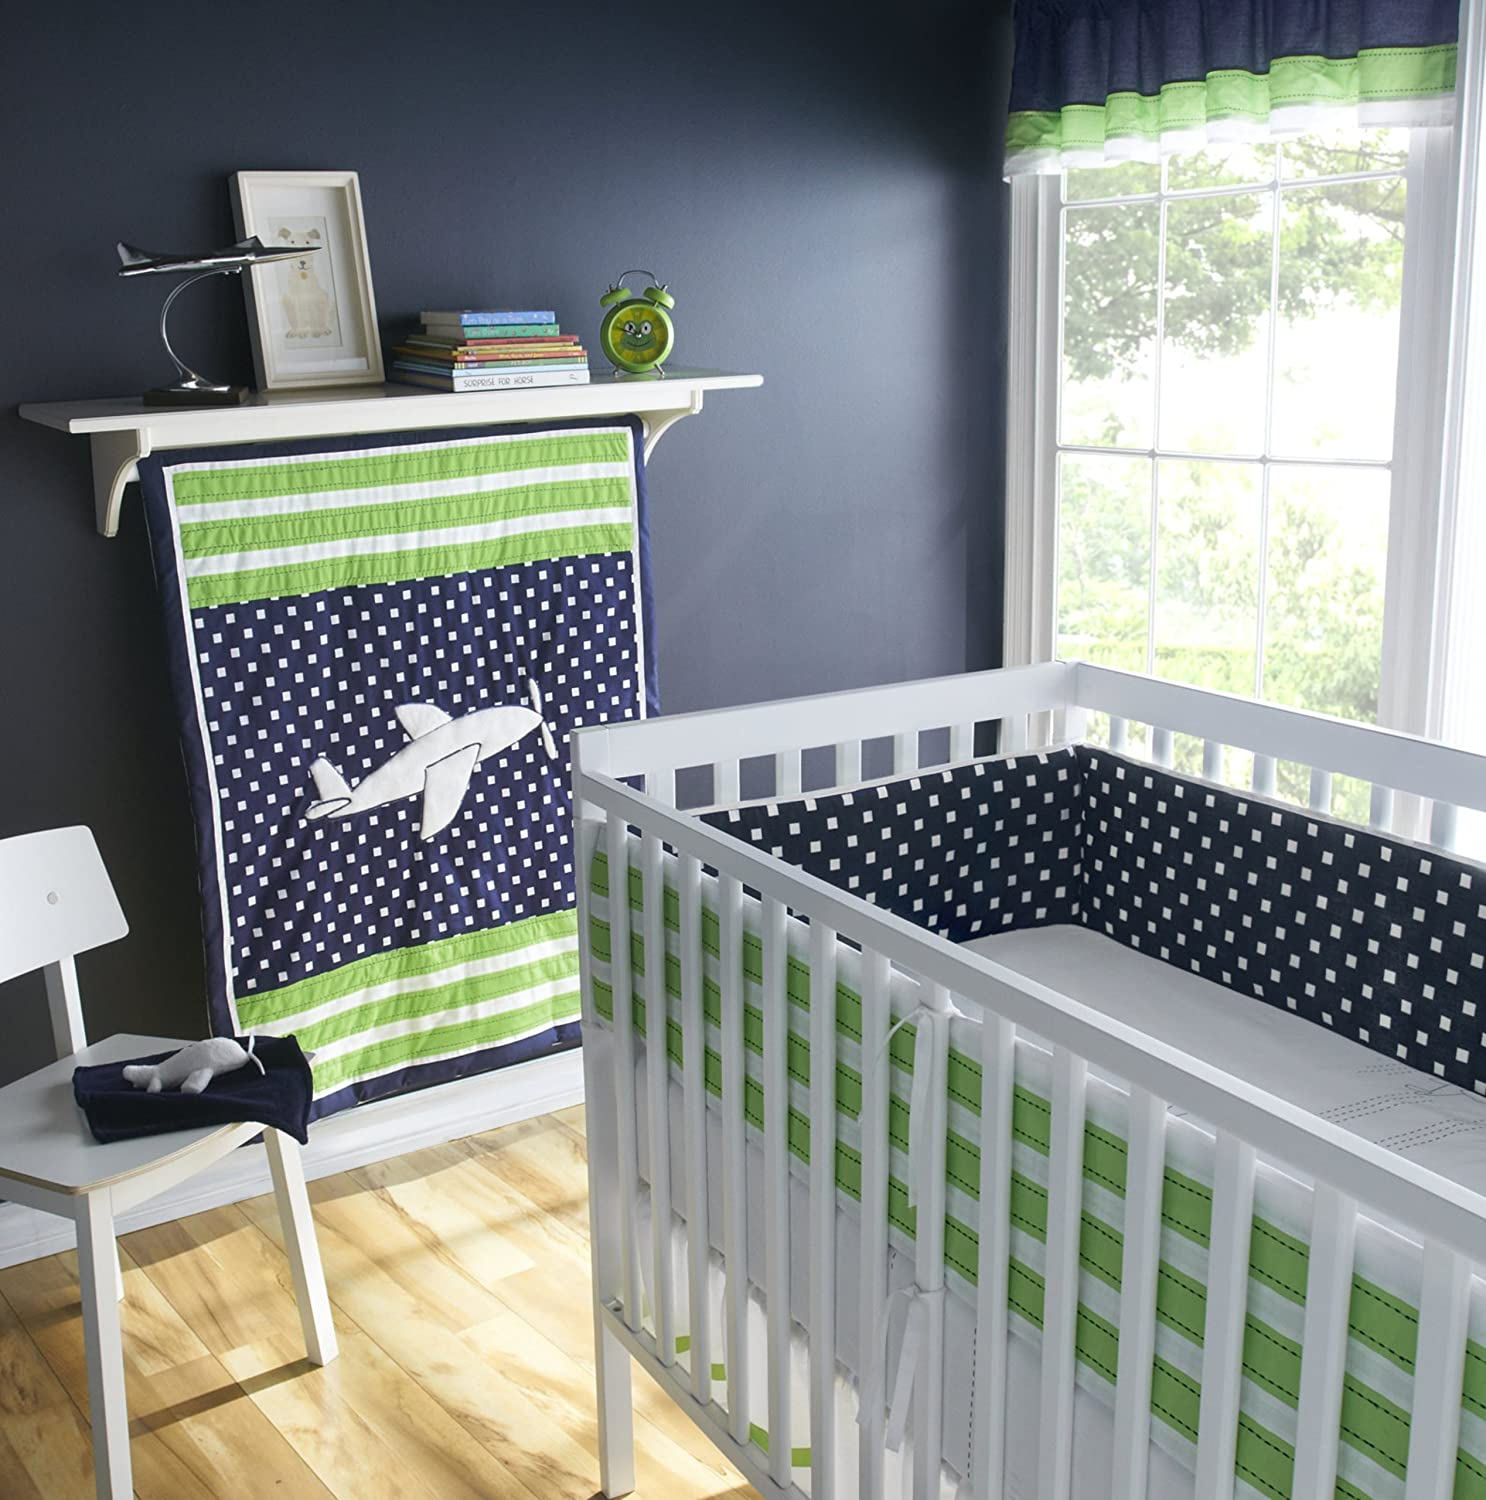 Airplane crib bedding totally kids totally bedrooms kids bedroom ideas - Airplane baby bedding sets ...